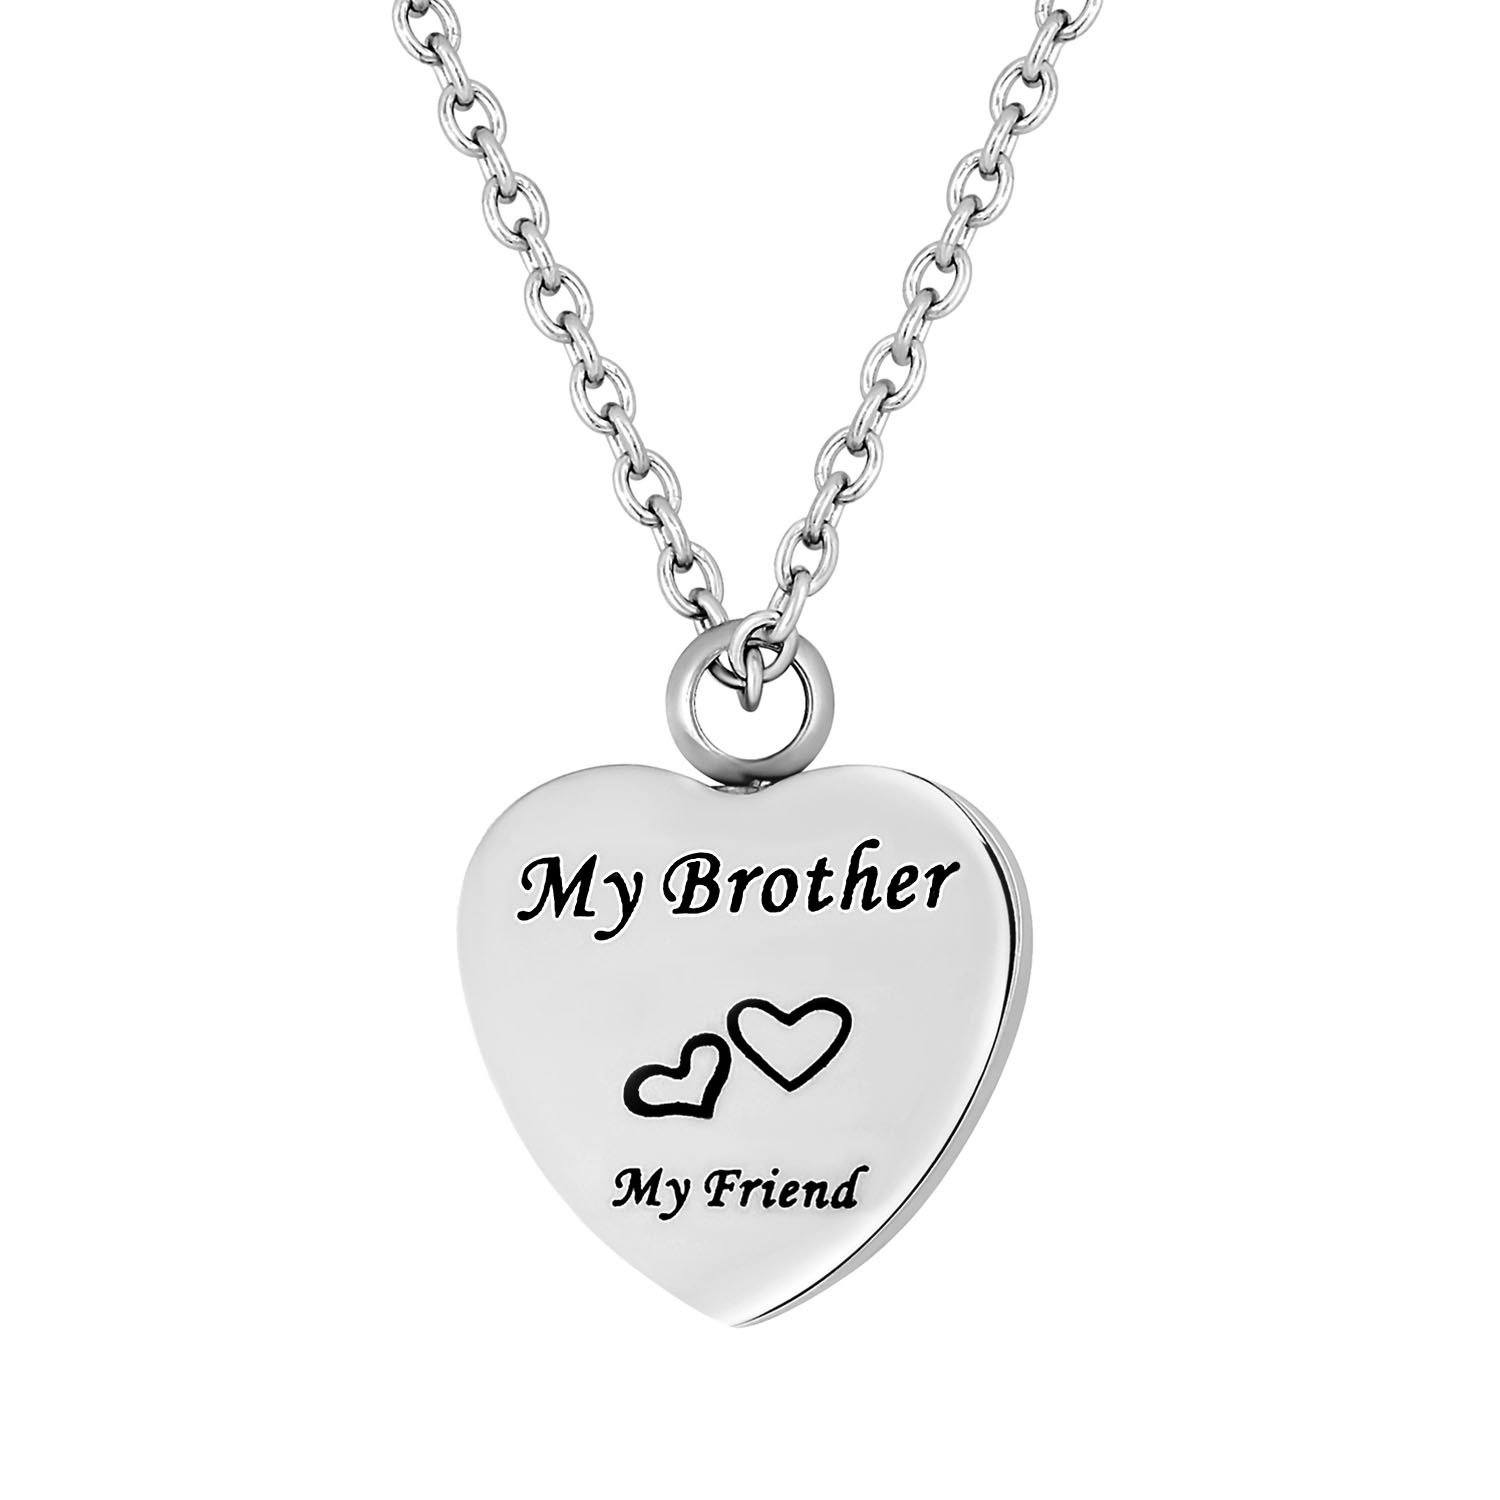 Cremation Jewelry Necklace for Ashes - My Brother